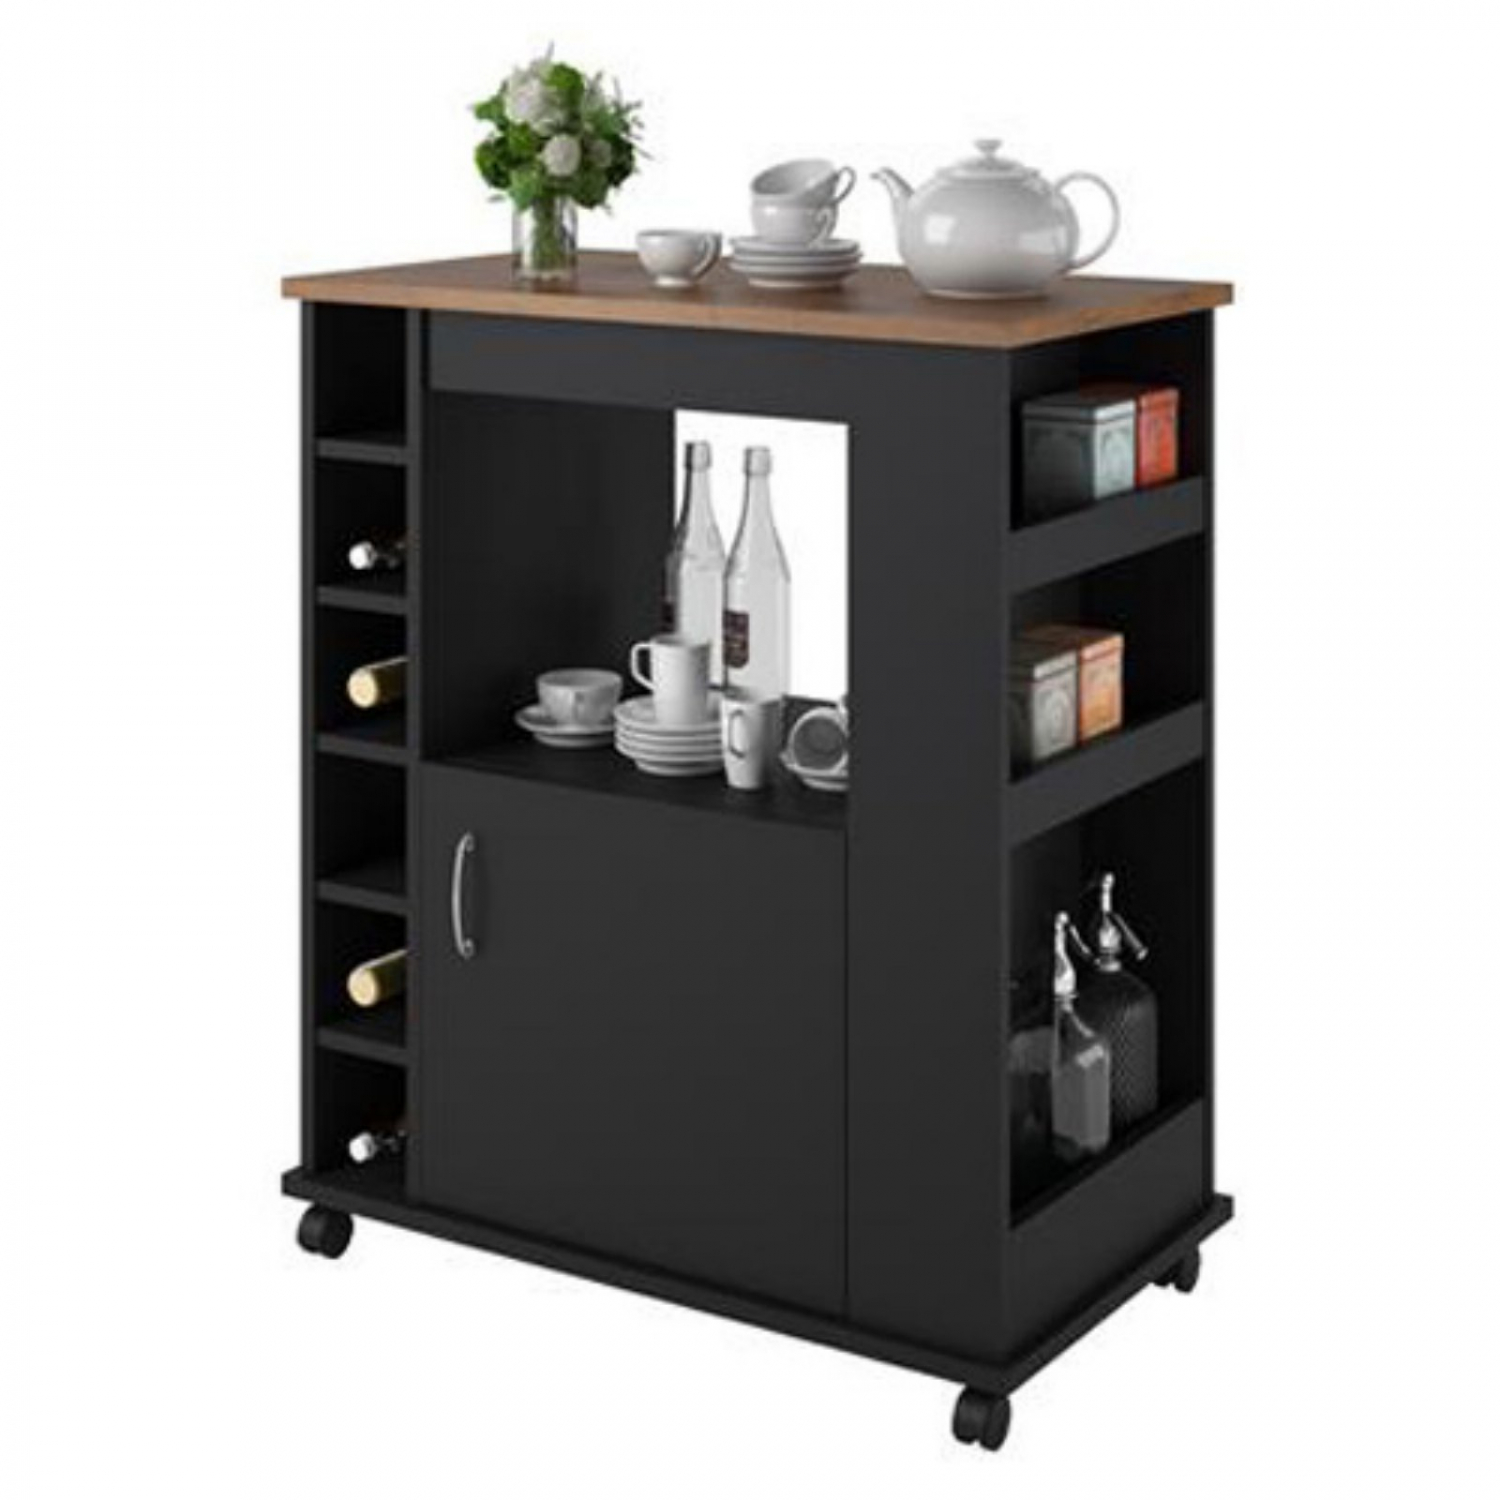 Small Kitchen Cart Island Cabinet Utility With Wheels on